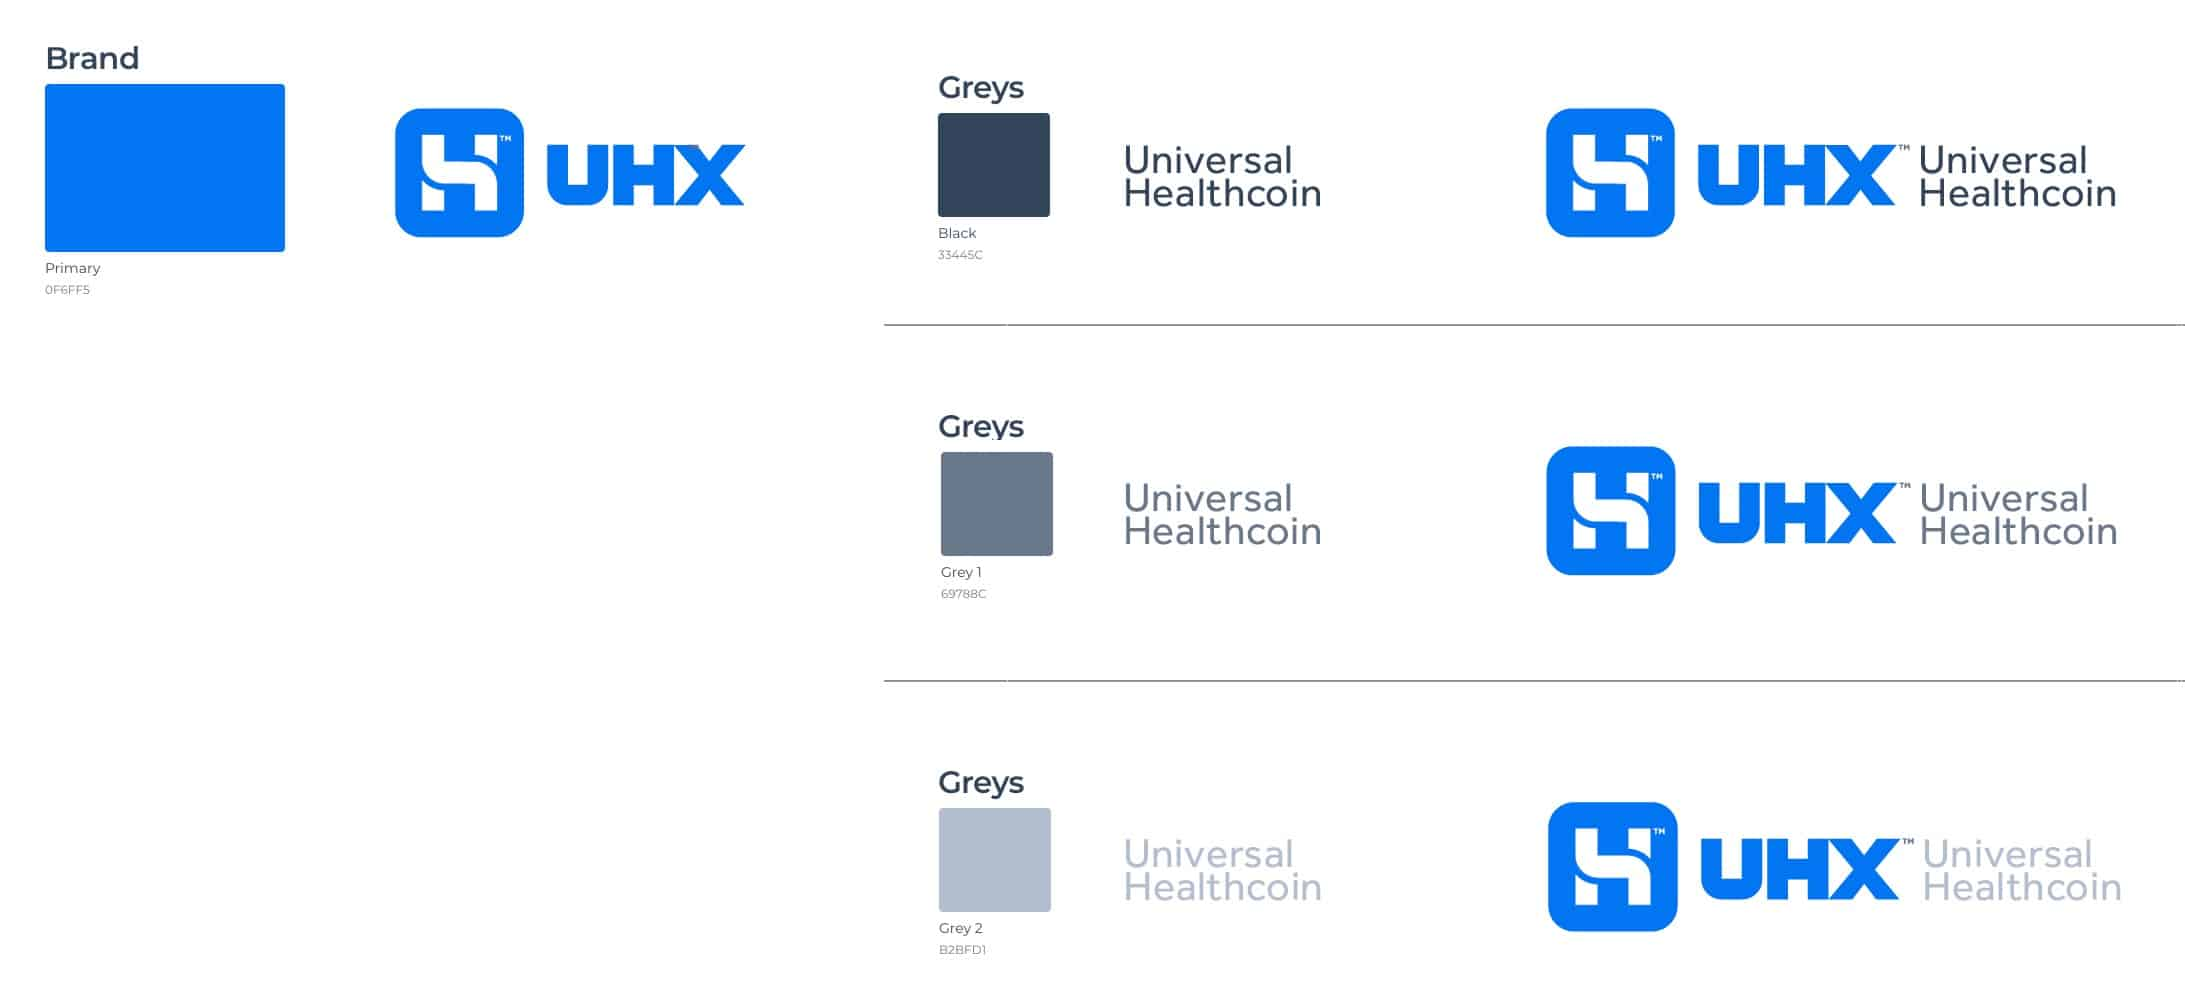 UHX Universal Healthcoin & Exchange Logo & Brand Identity Designed by The Logo Smith